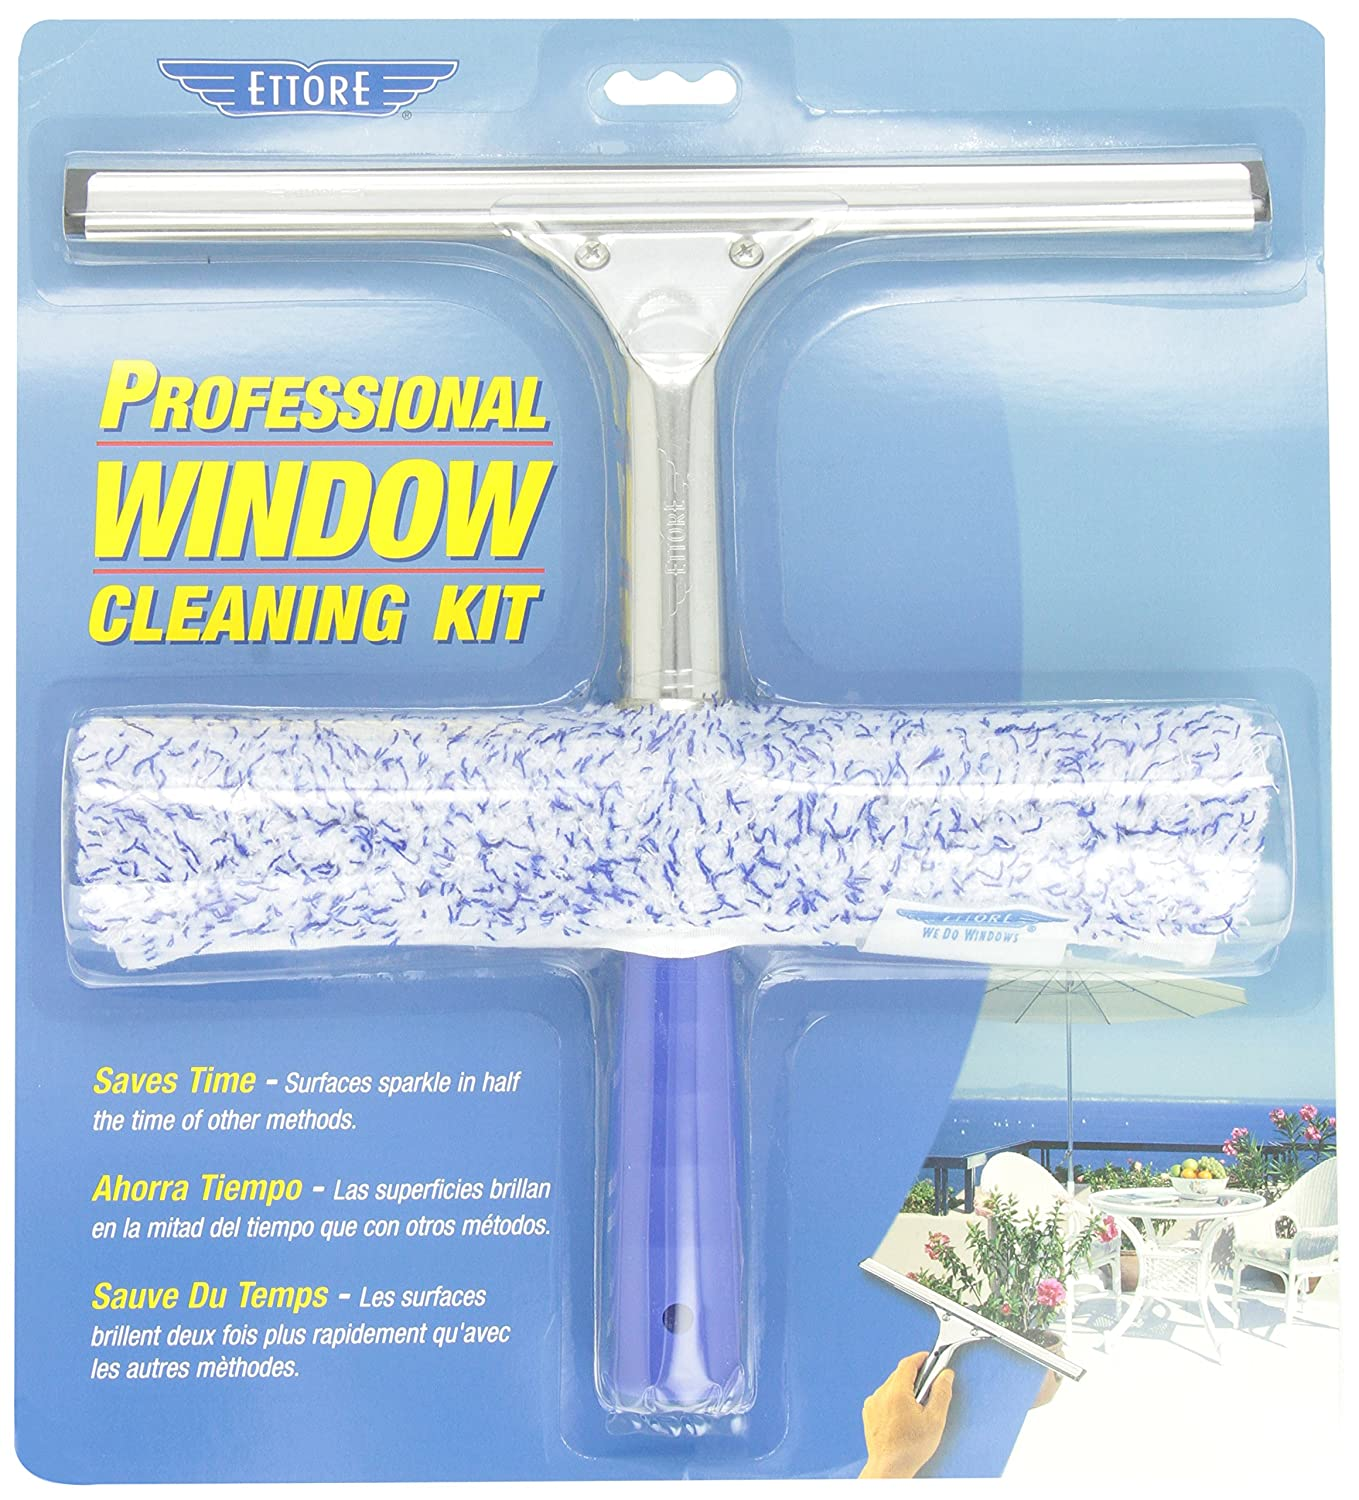 Ettore Professional Window Cleaning Kit - 12-inch Original Squeegee and 10-inch Mighty Washer